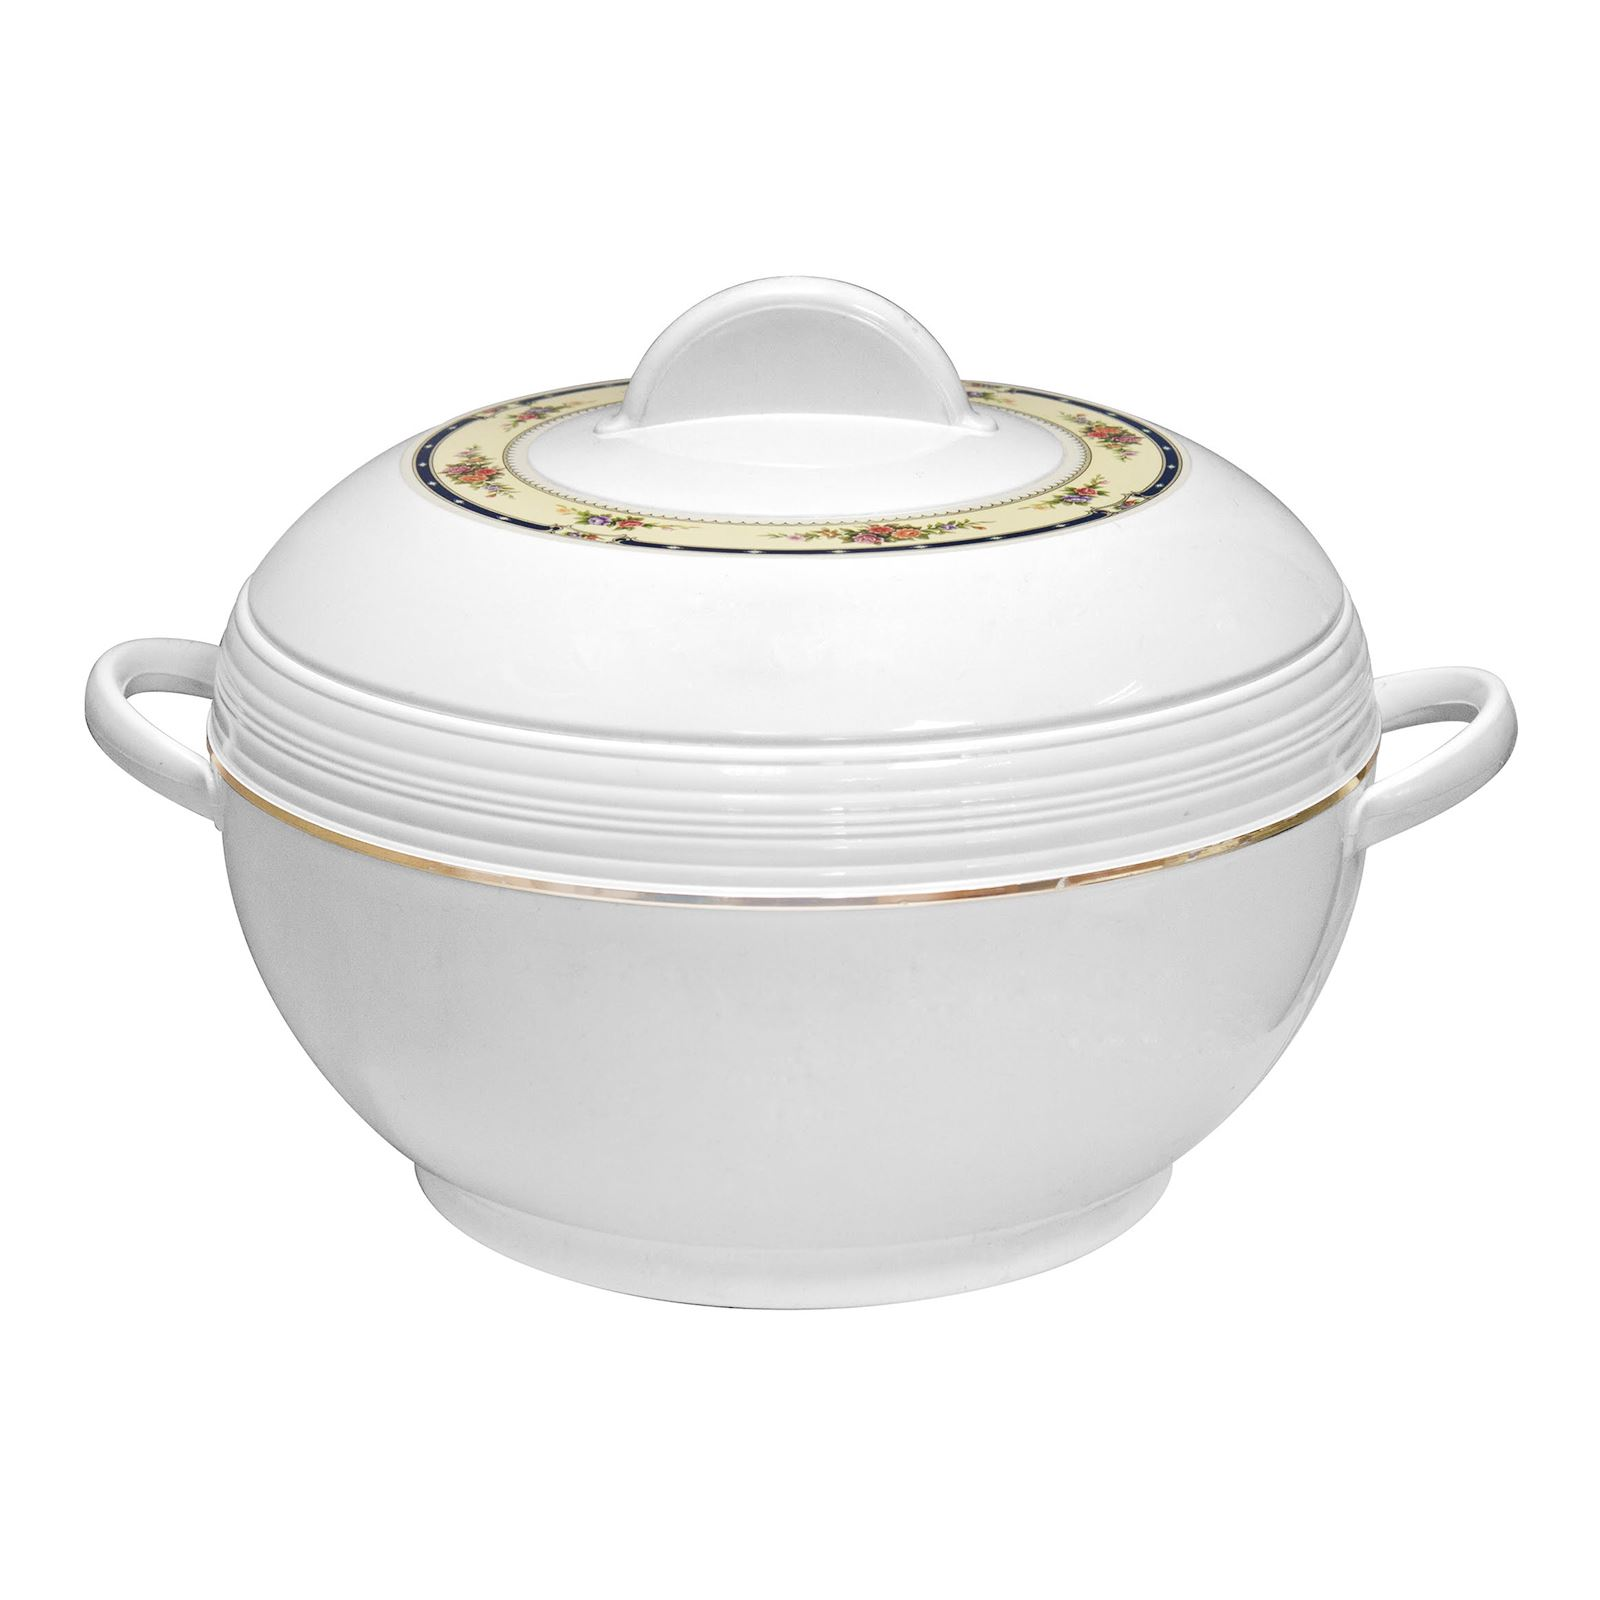 Ambiente 3pc Hot Pot Set Insulated Serving Dishes Round